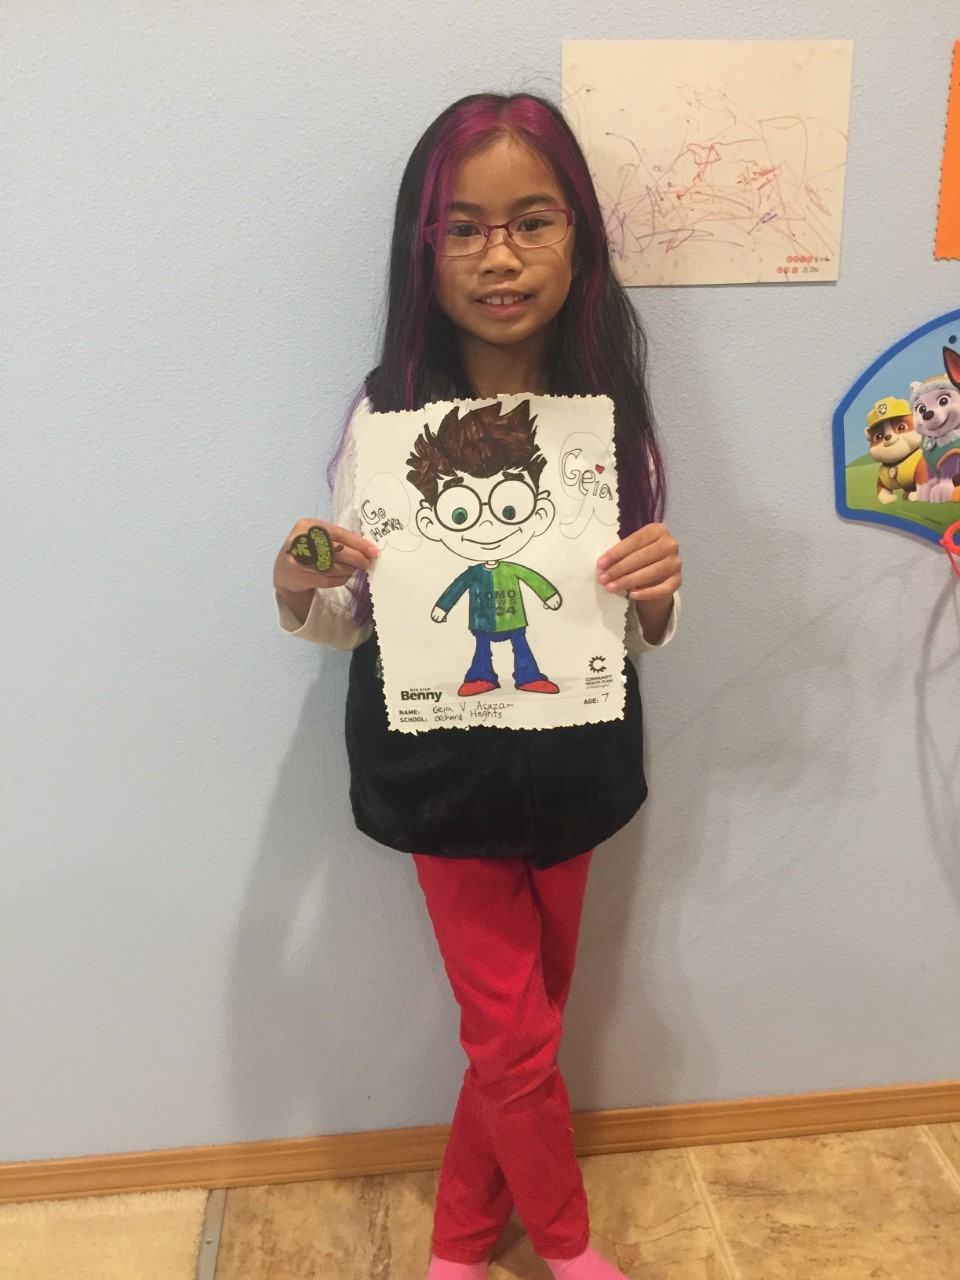 Geia AcuZar, 2nd grade, Orchard Heights Elementary